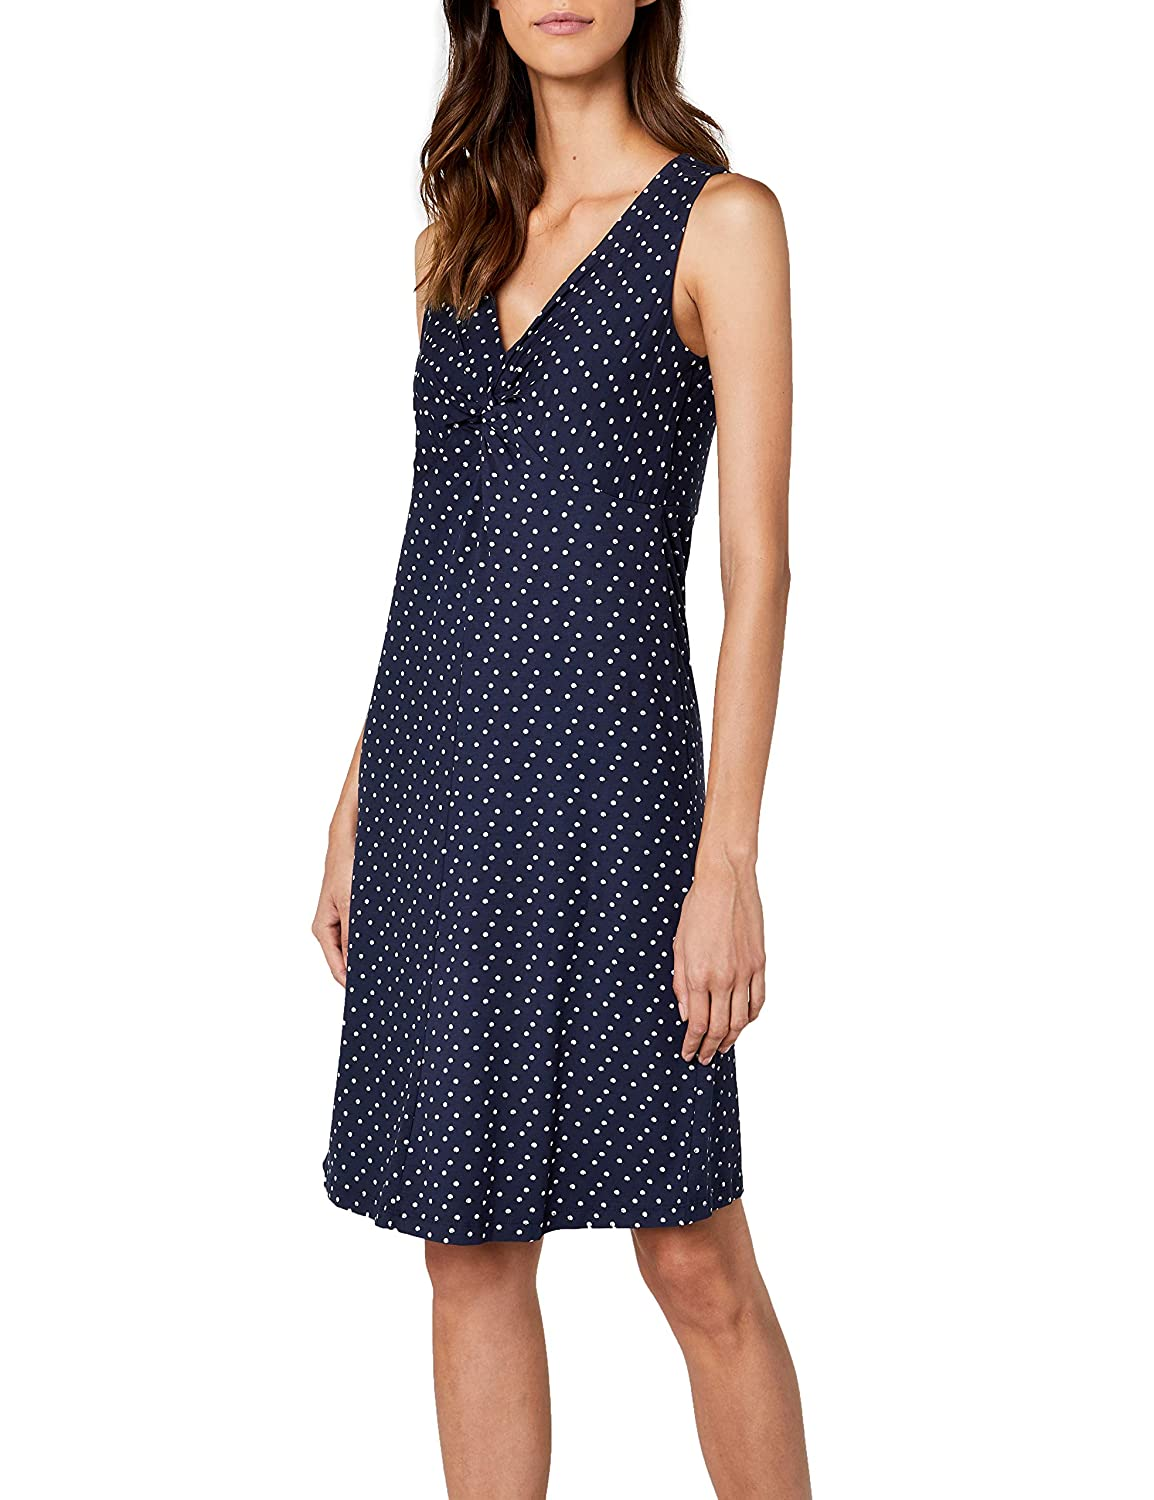 TOM TAILOR Damen Lovely Knot Dress Kleid